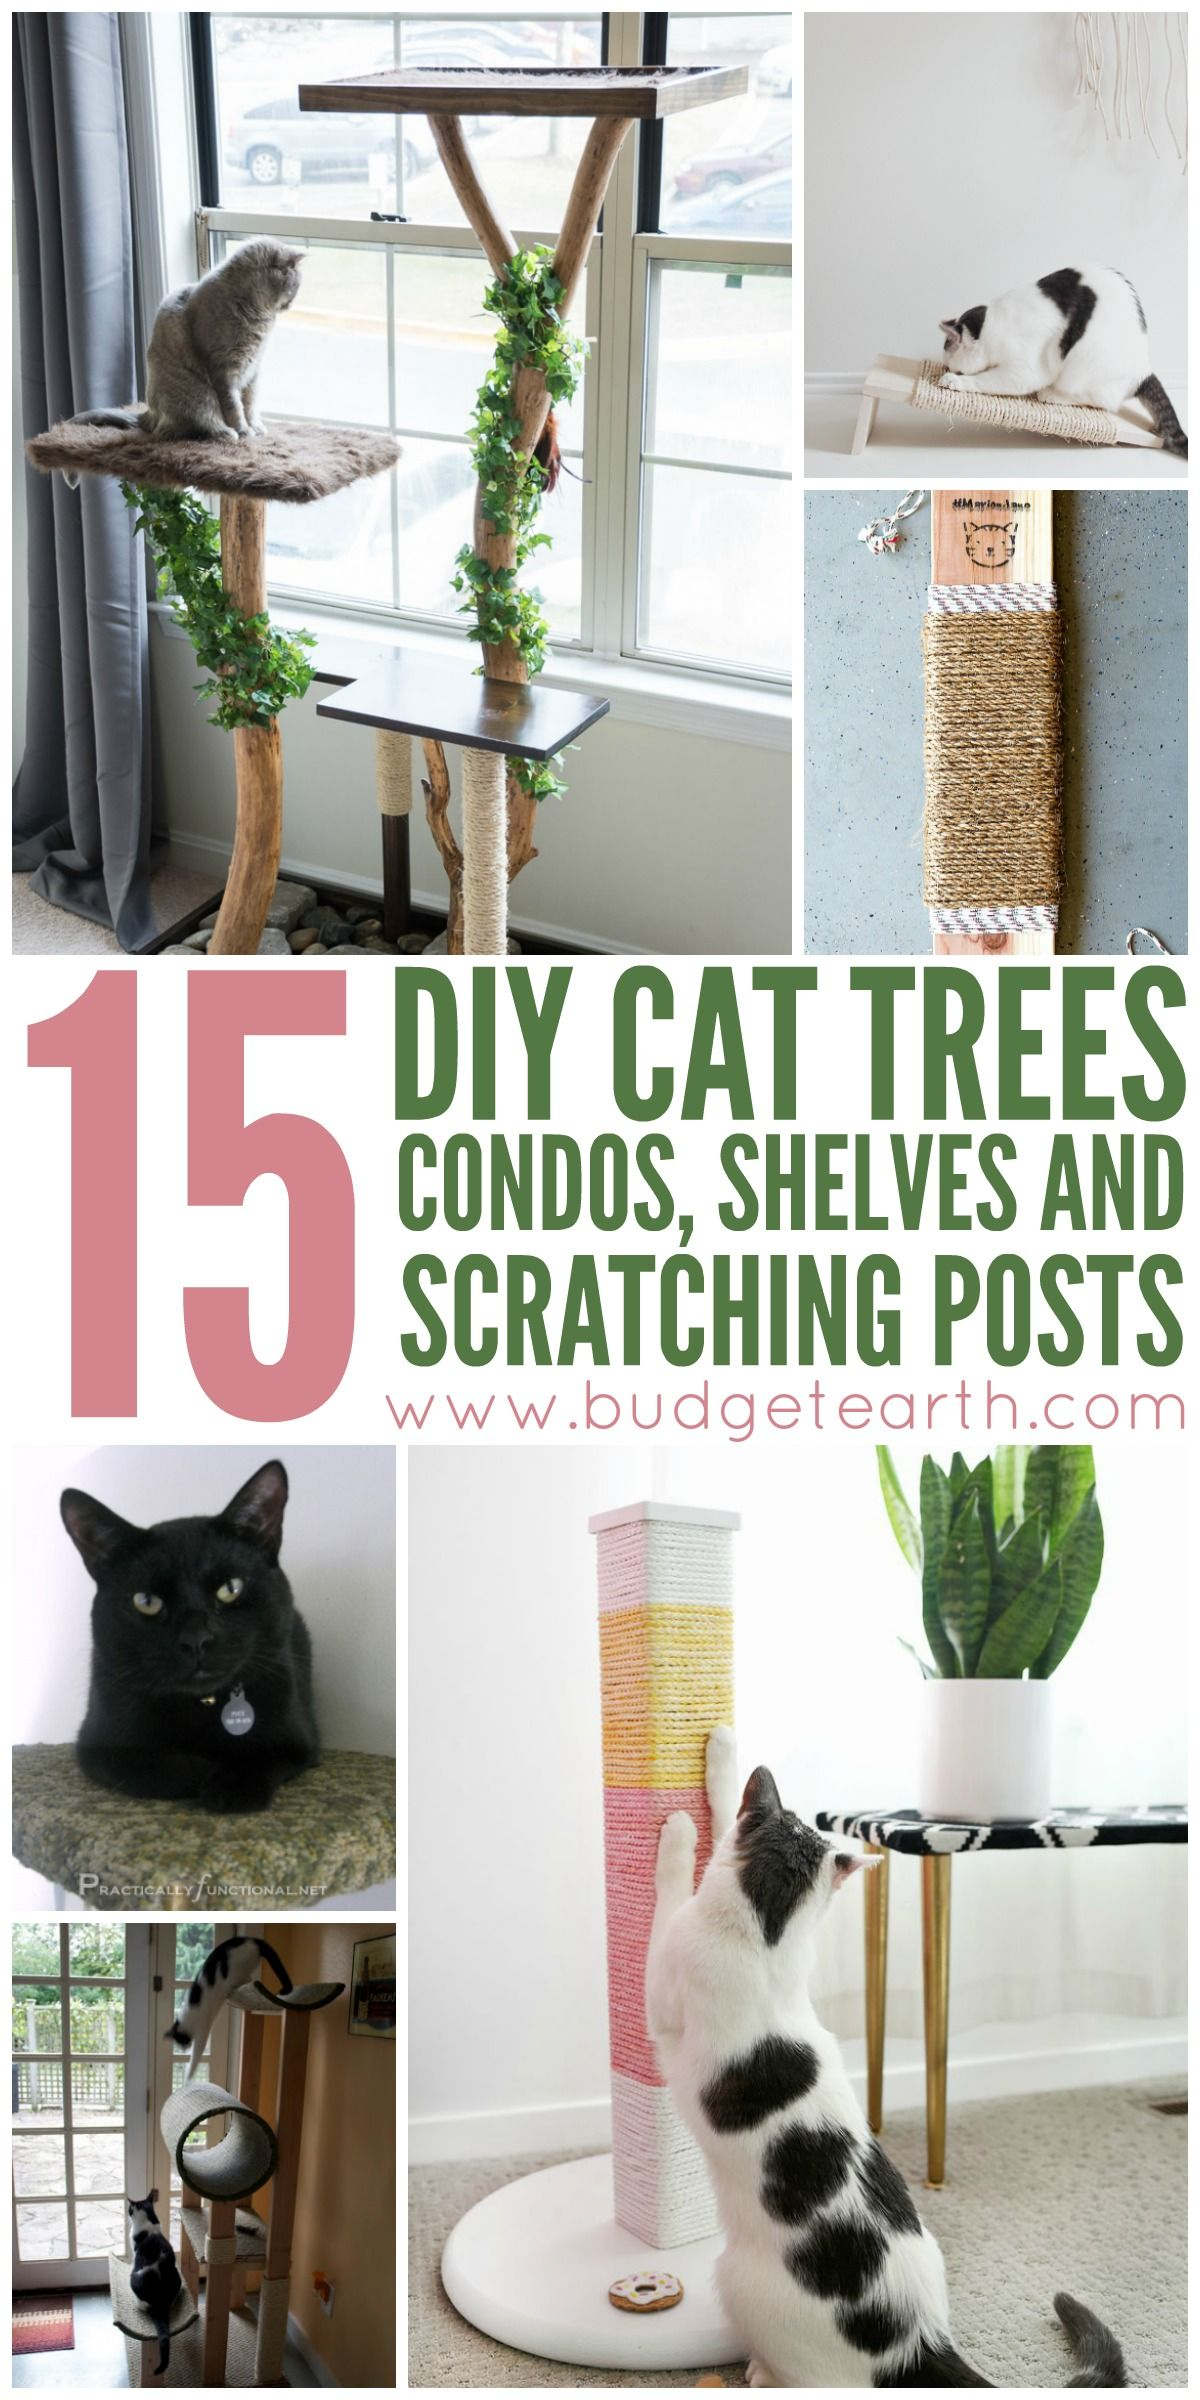 46d4e0ac3331 Want to spoil your cat? Check out these 15 DIY Cat Trees, Condos, and  Scratching posts projects here!